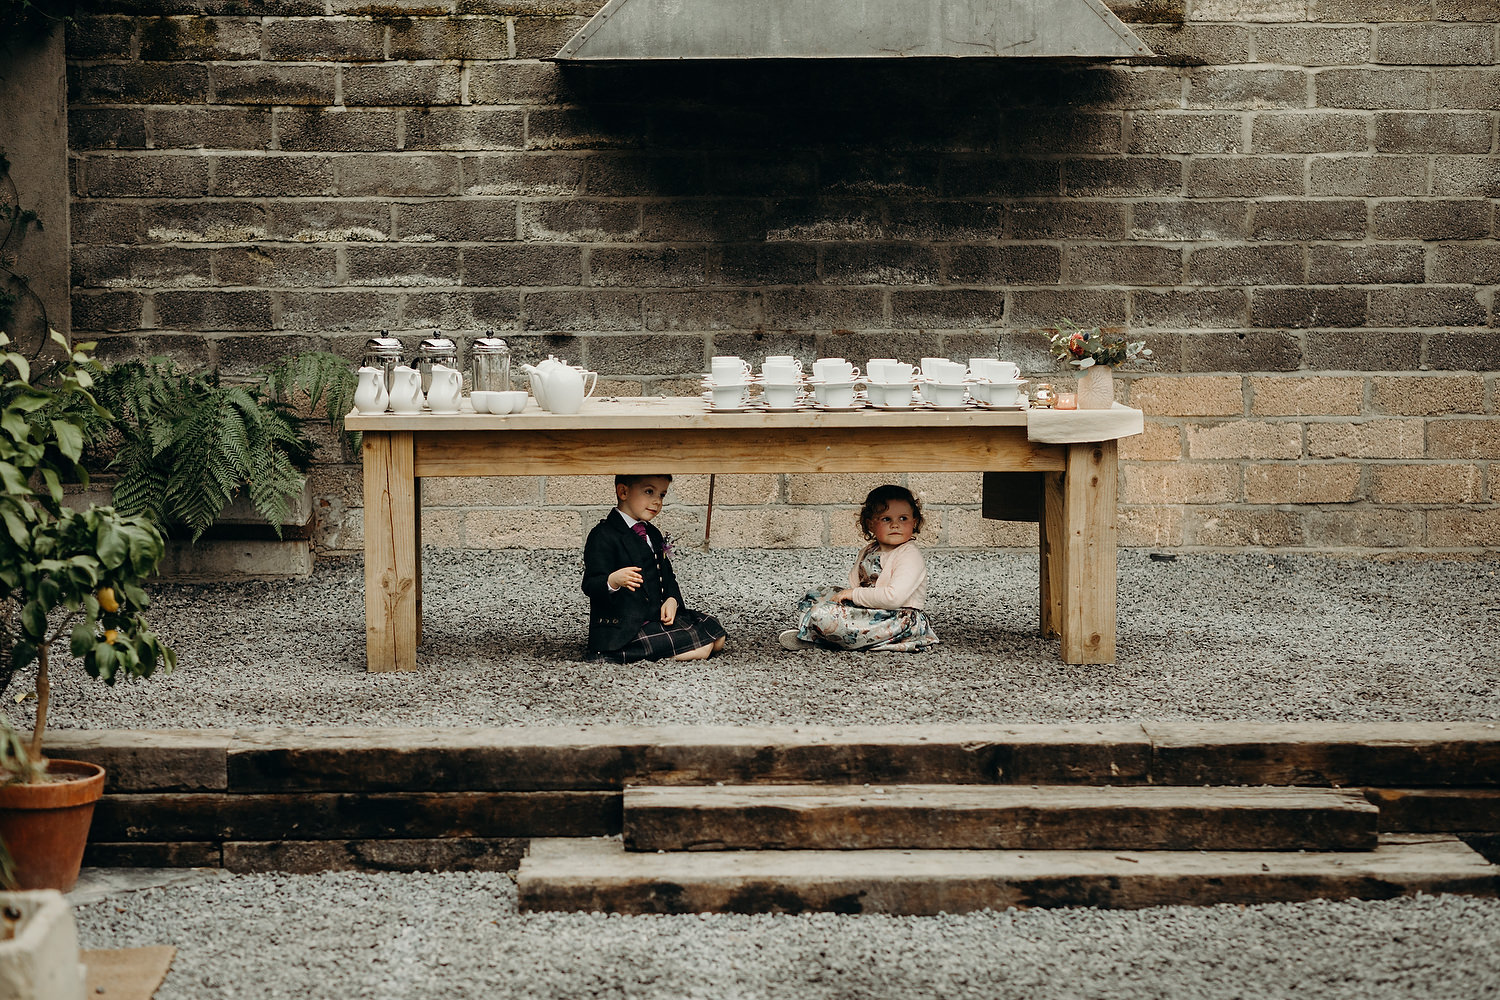 kids play under table